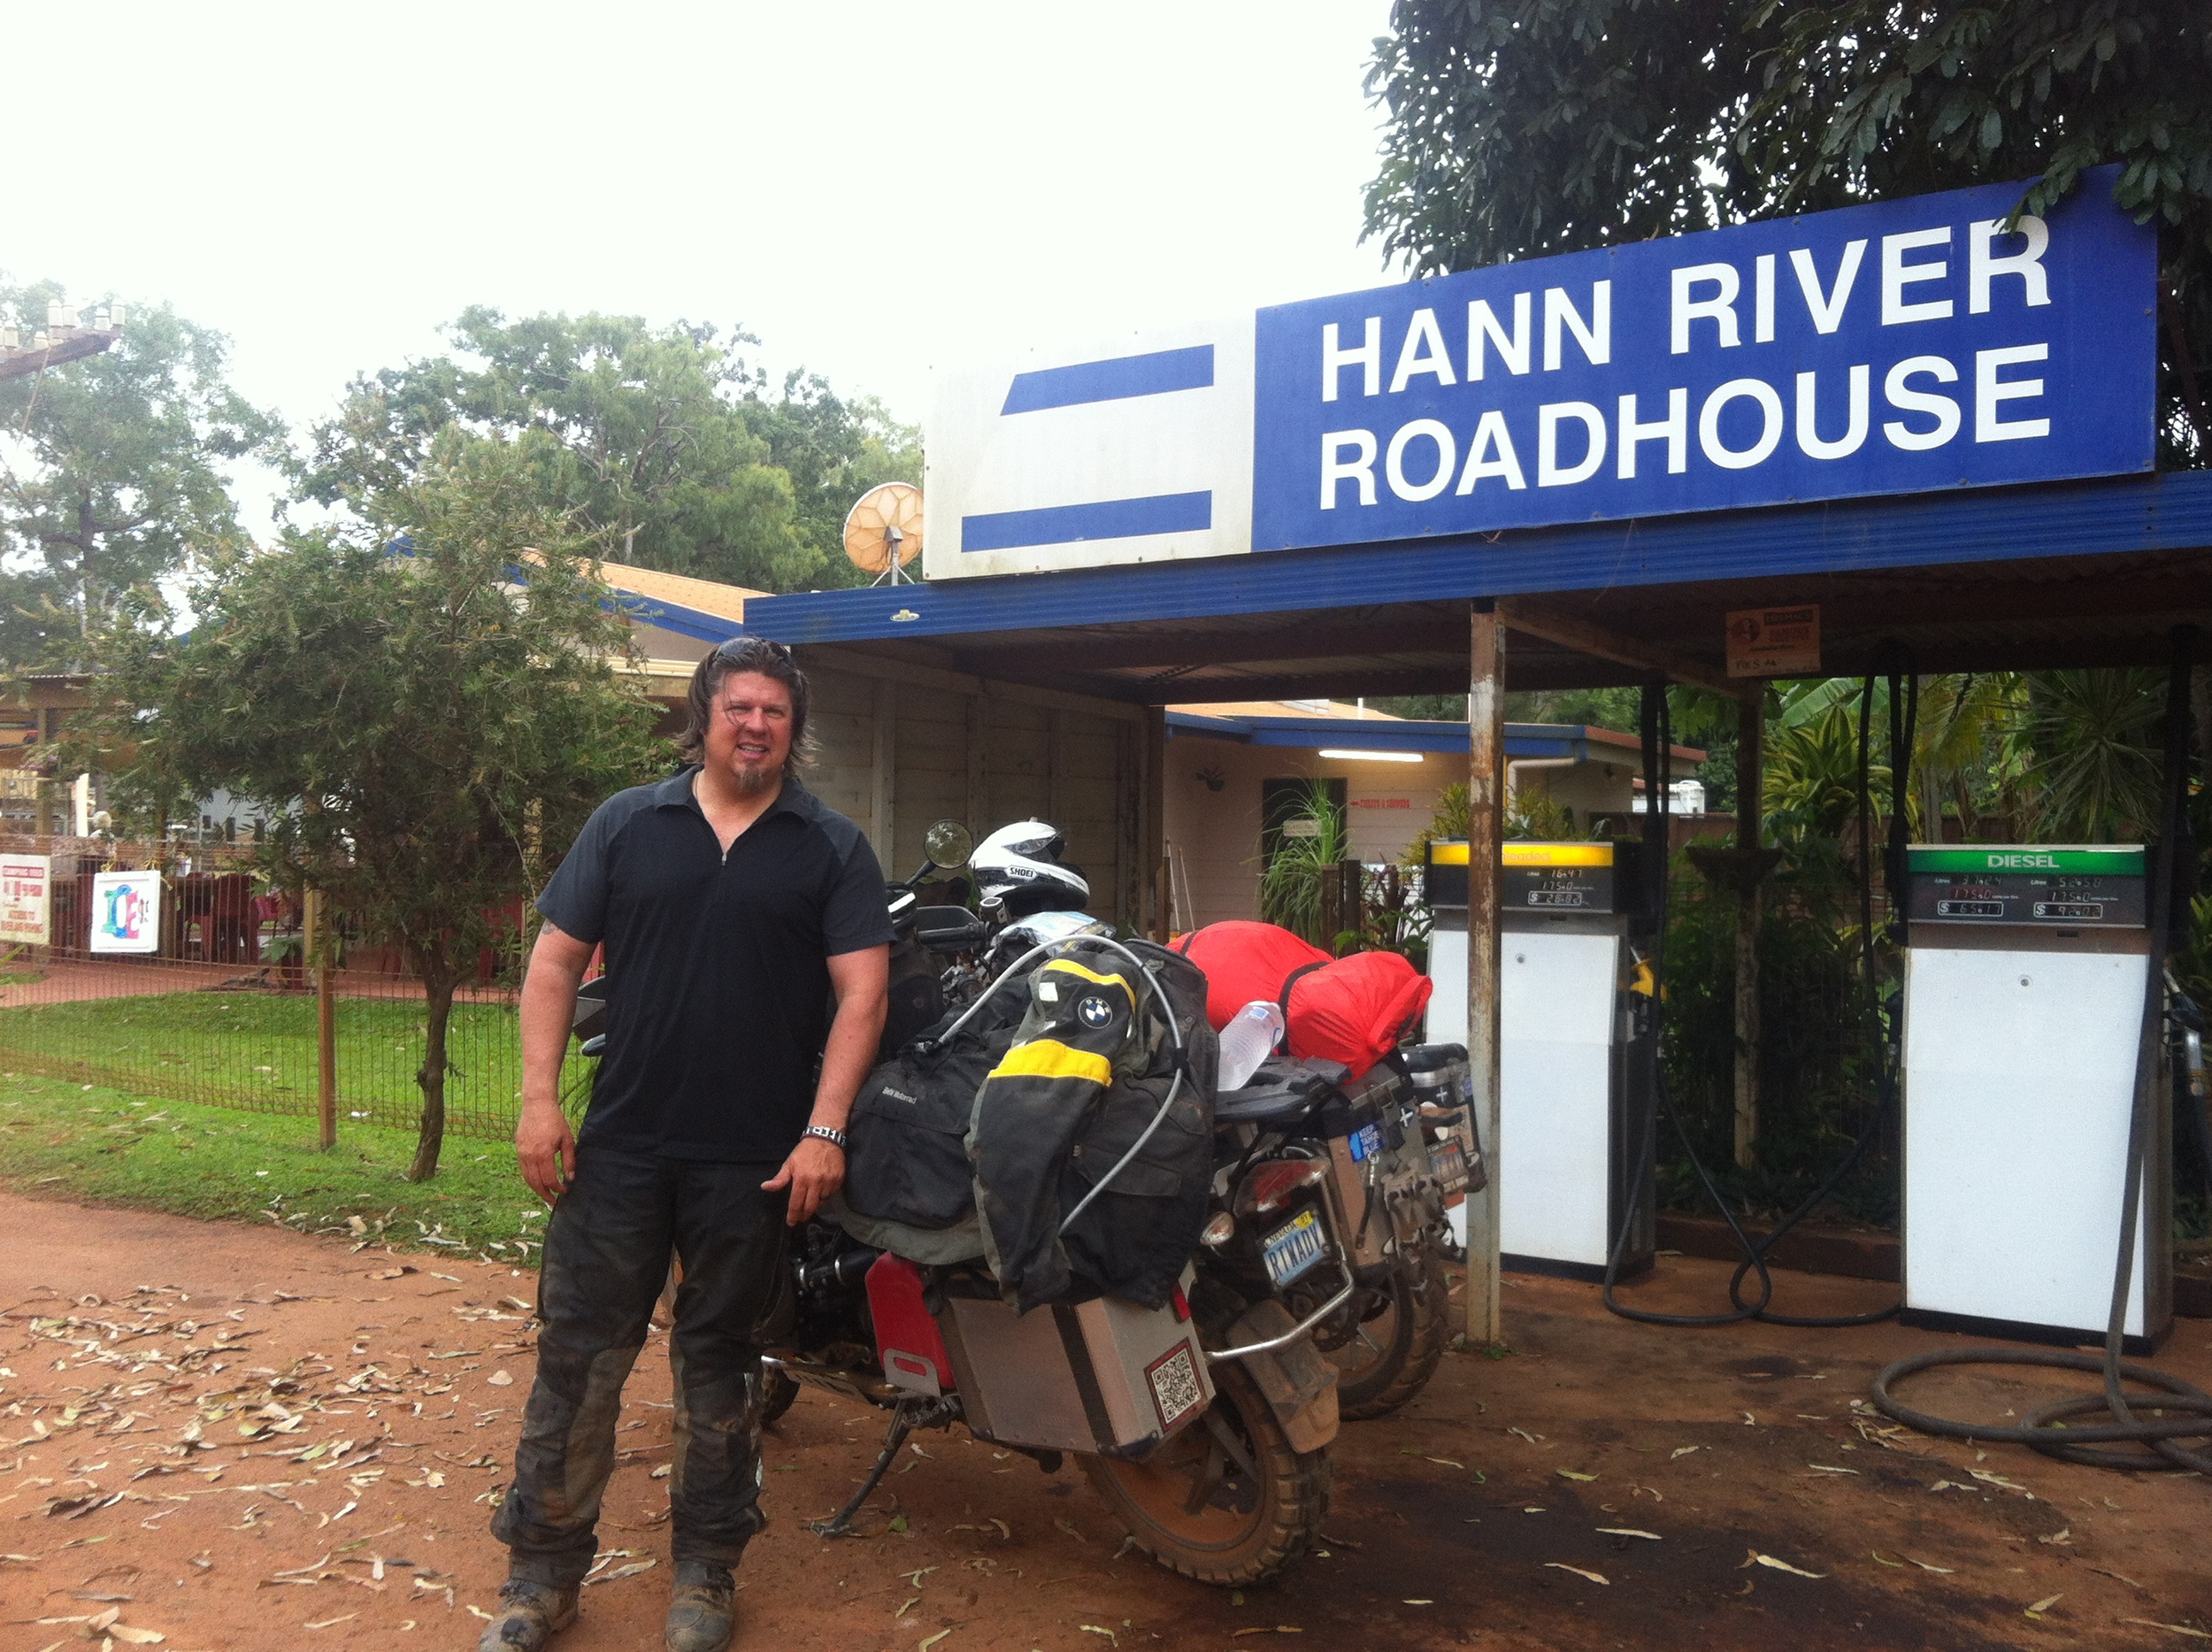 Kevin at the Hann River Roadhouse fuel pumps.